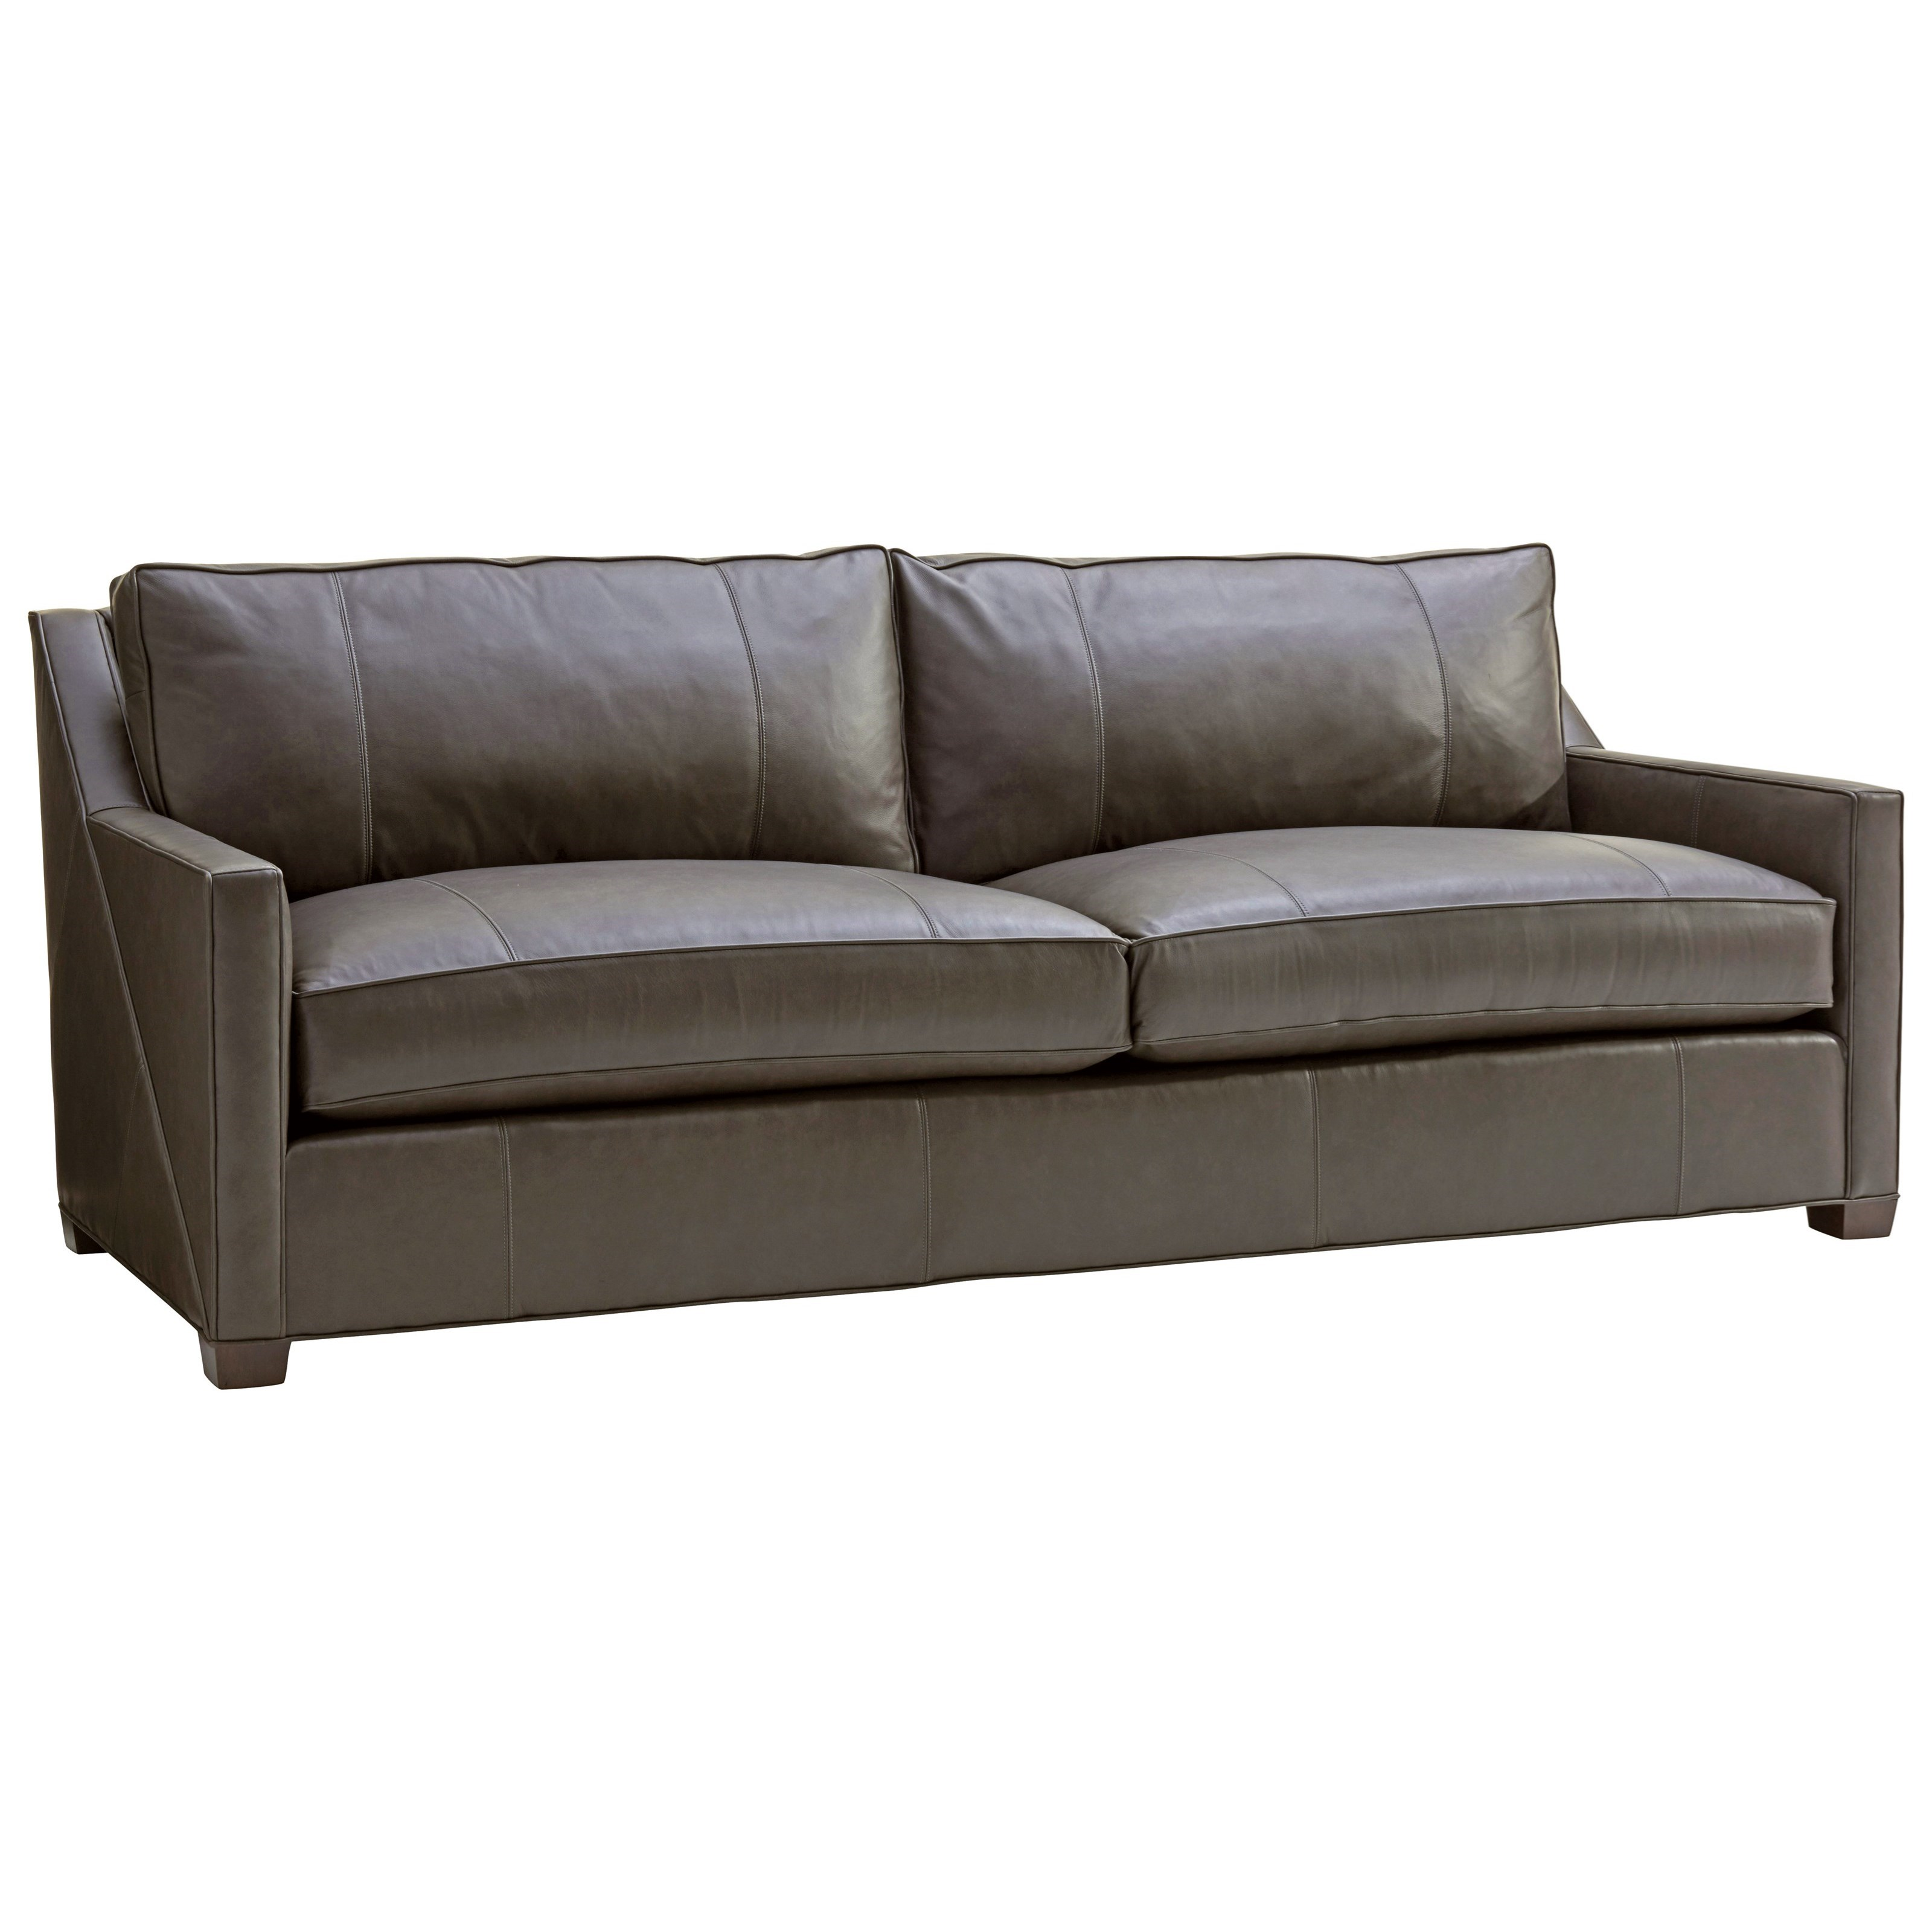 Lexington Zavala Wright Contemporary Two Seat Sofa